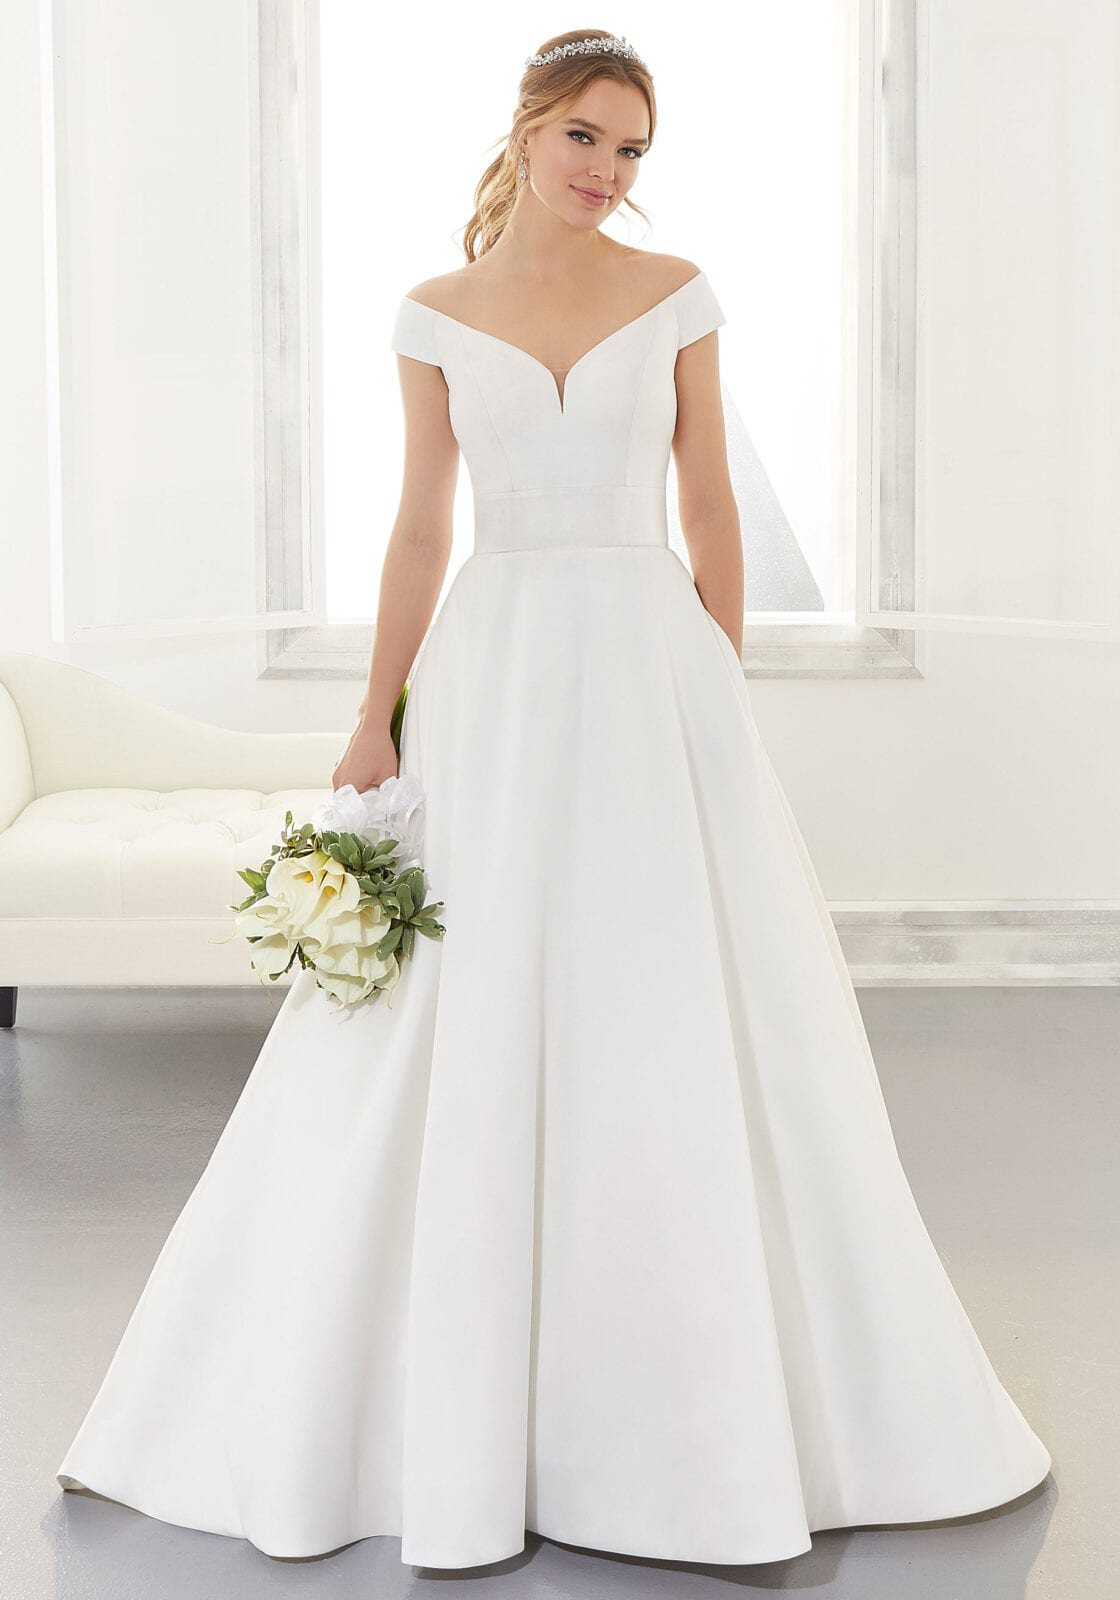 a-line wedding dress in satin has cap sleeves and a off the shoulder neckline.